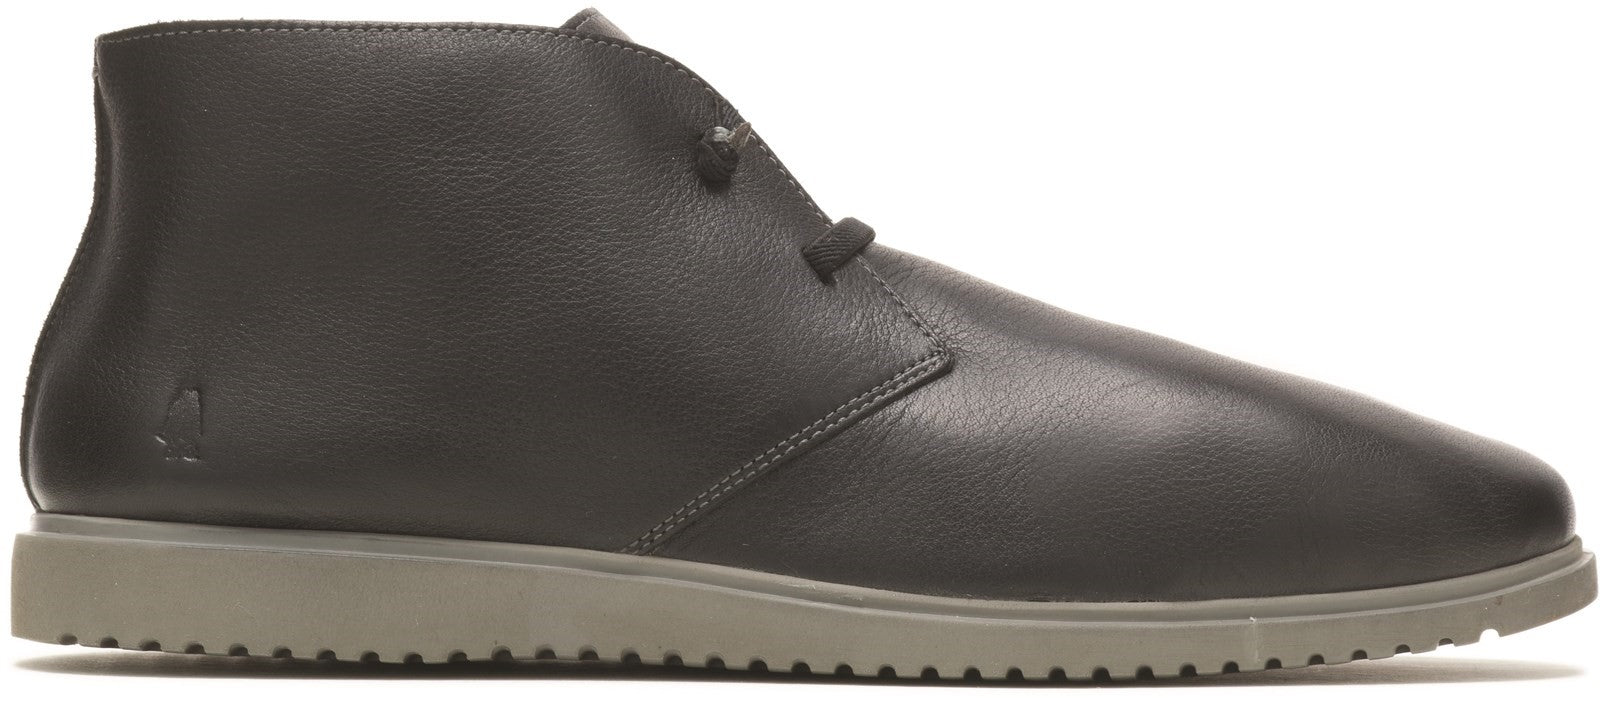 Black Everyday Chukka Boots